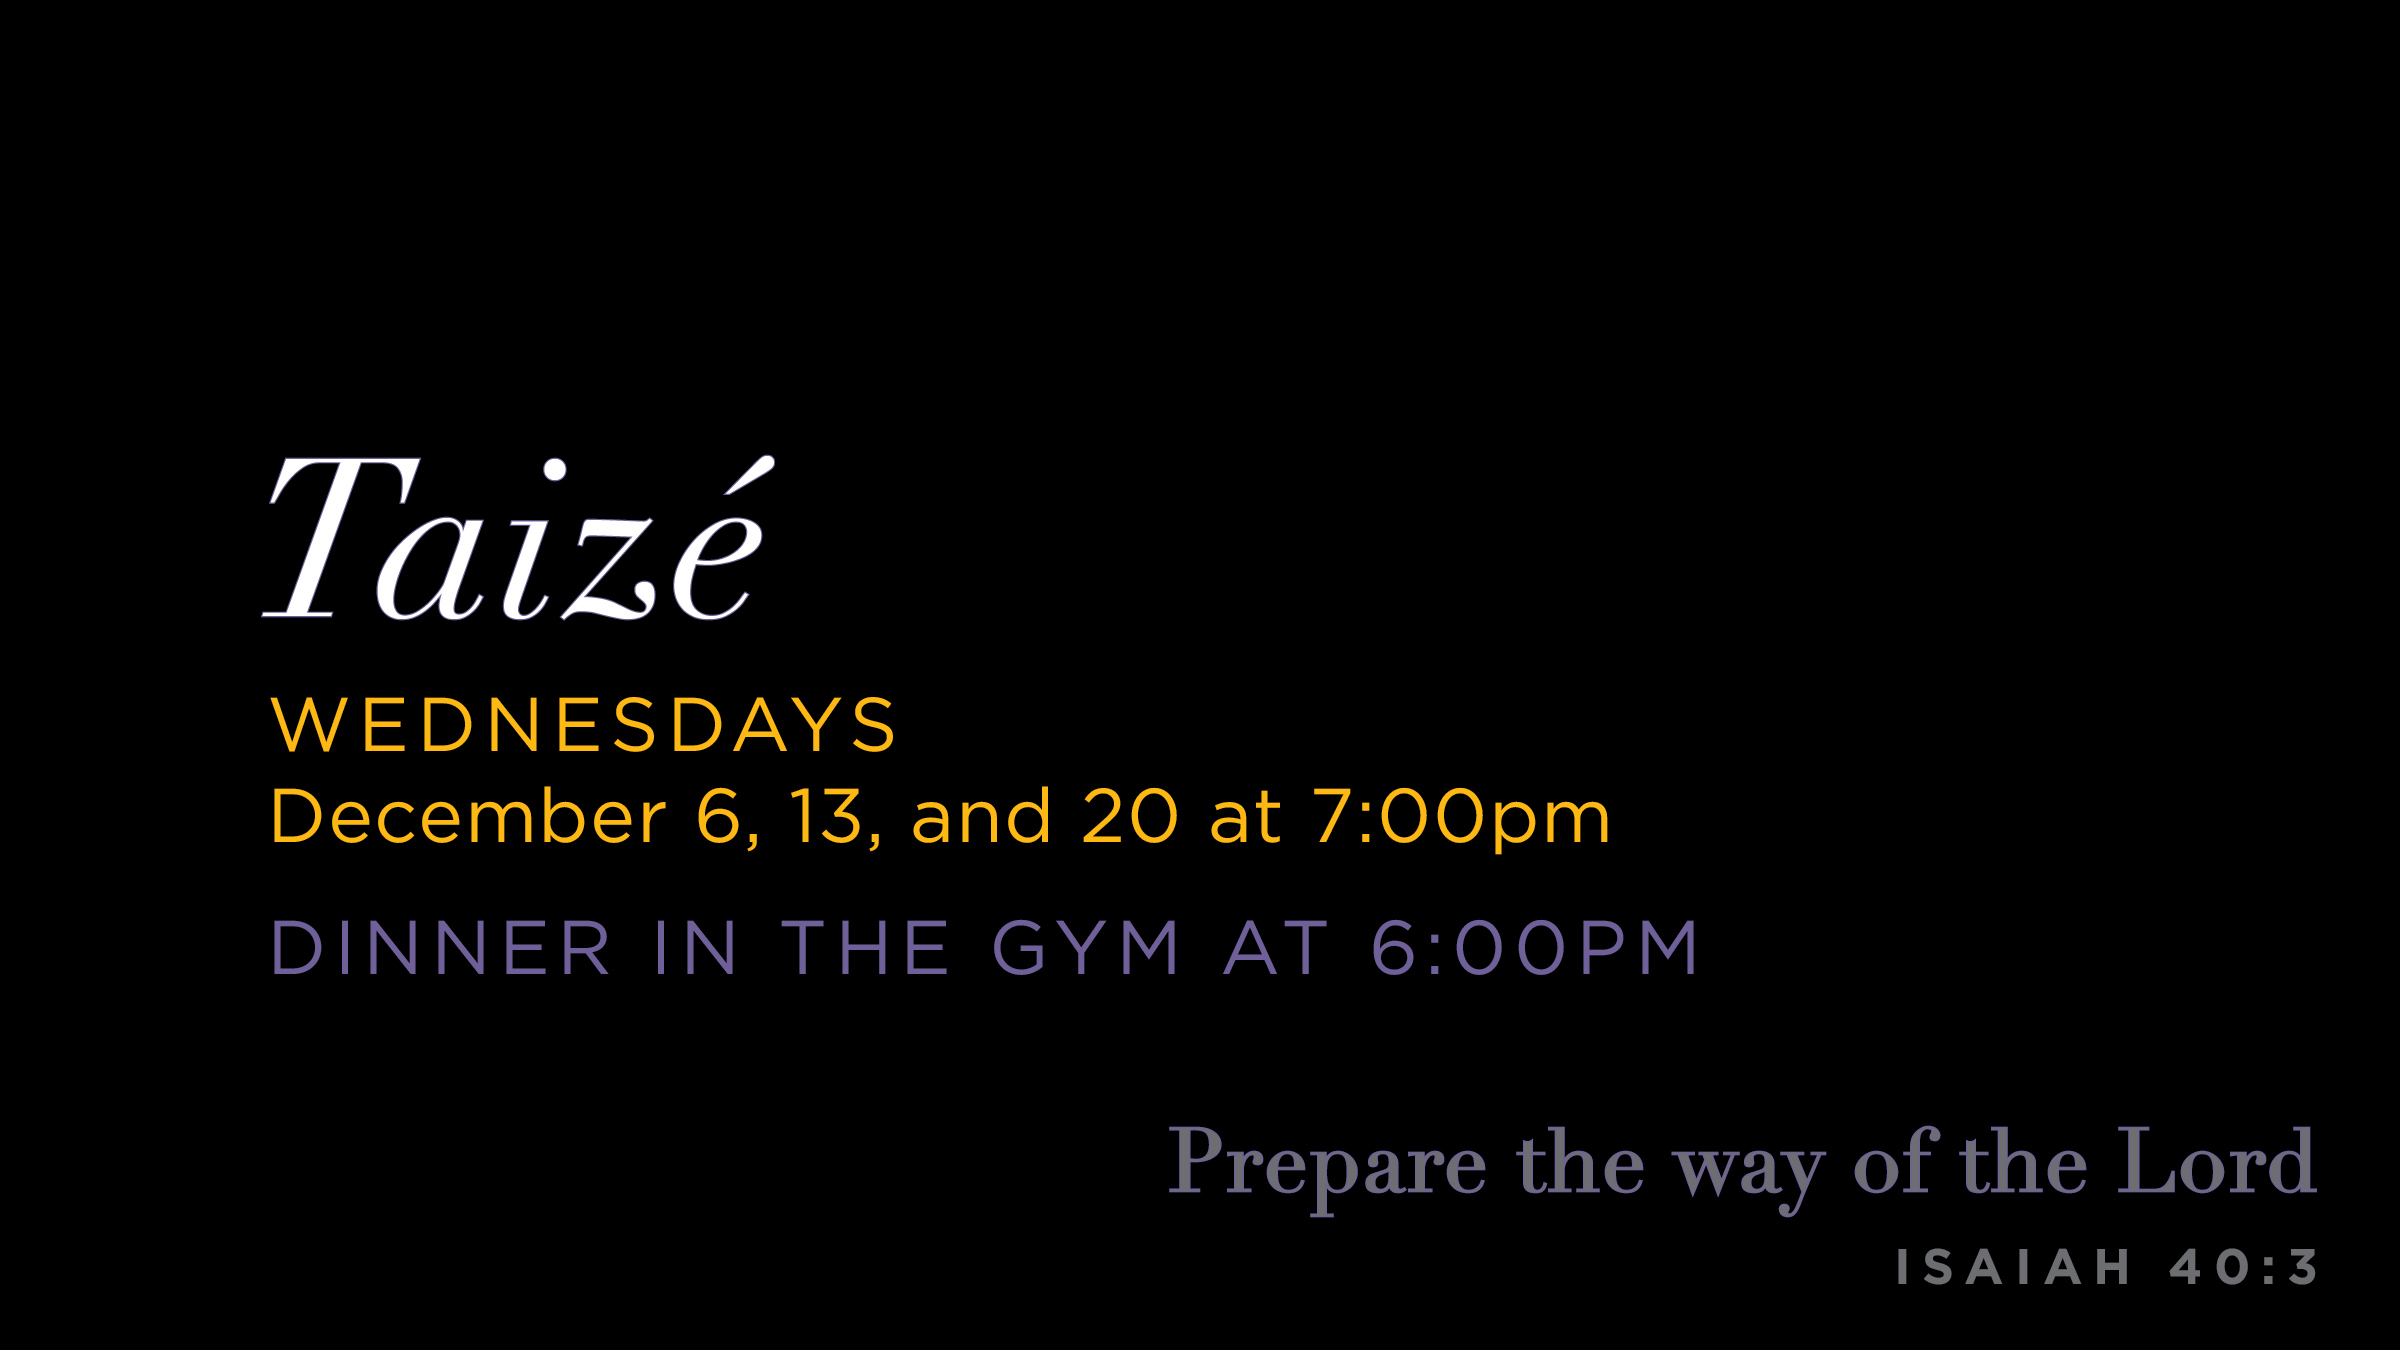 Taize, Wednesdays December 6, 13, and 20 @ 7:00 PM. Dinner served in Gym before each service from 6:00-6:45 PM